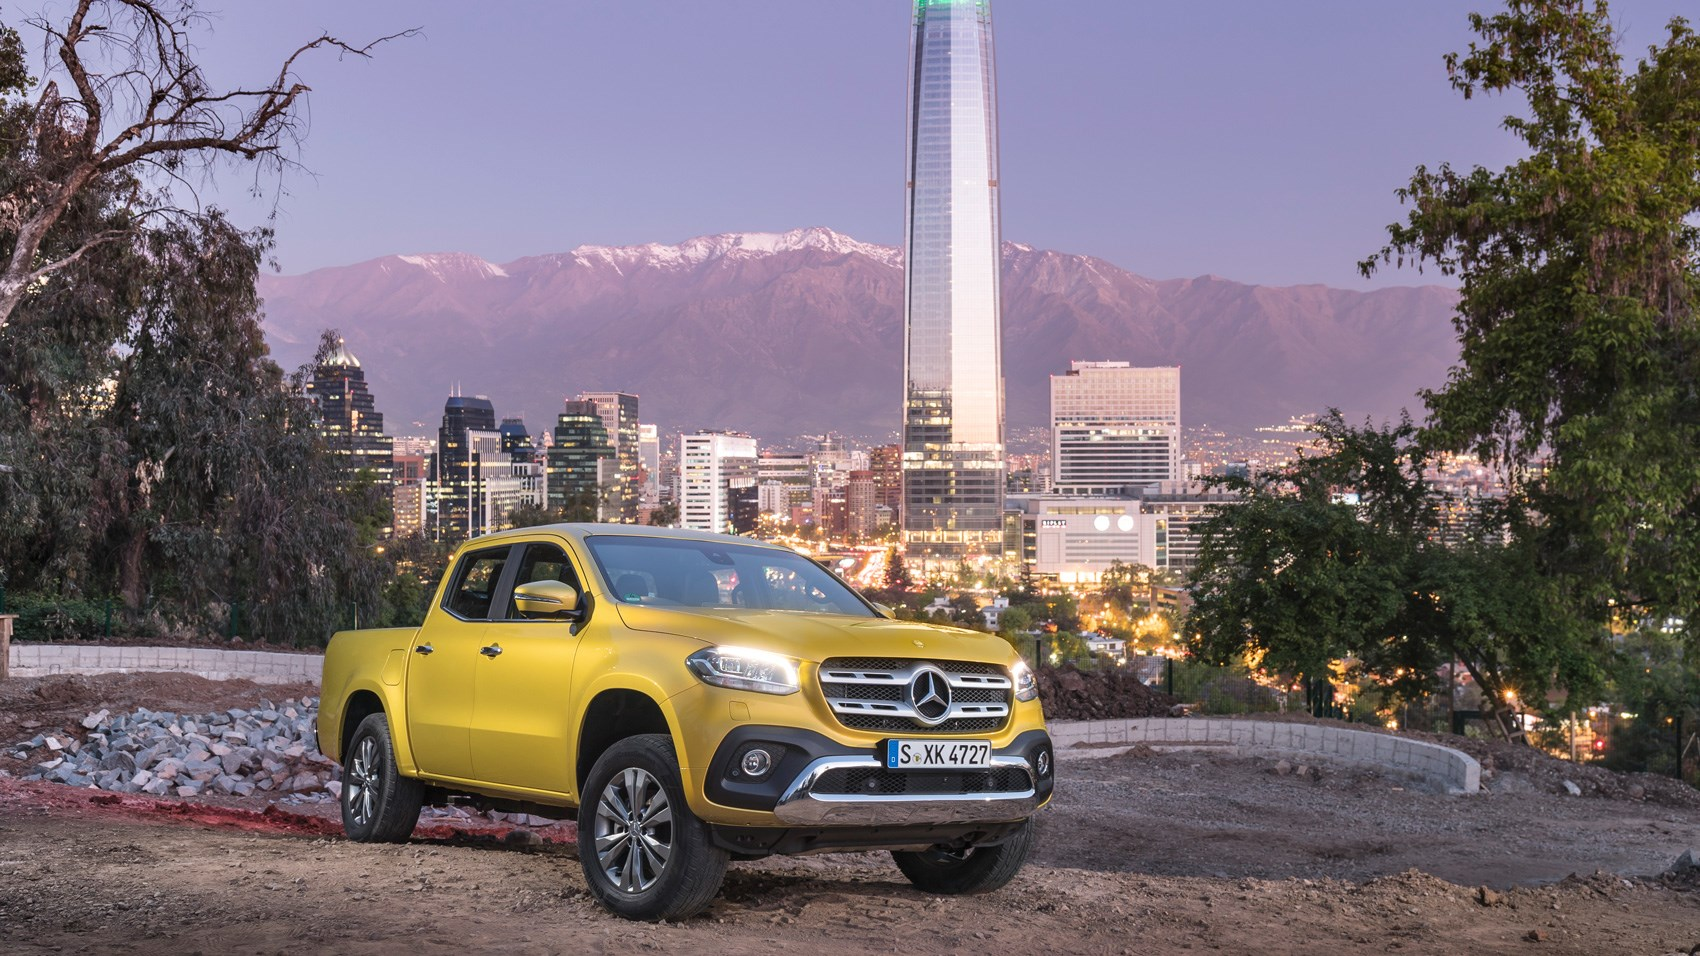 https://car-images.bauersecure.com/pagefiles/74695/_x-class_yellow_04.jpg